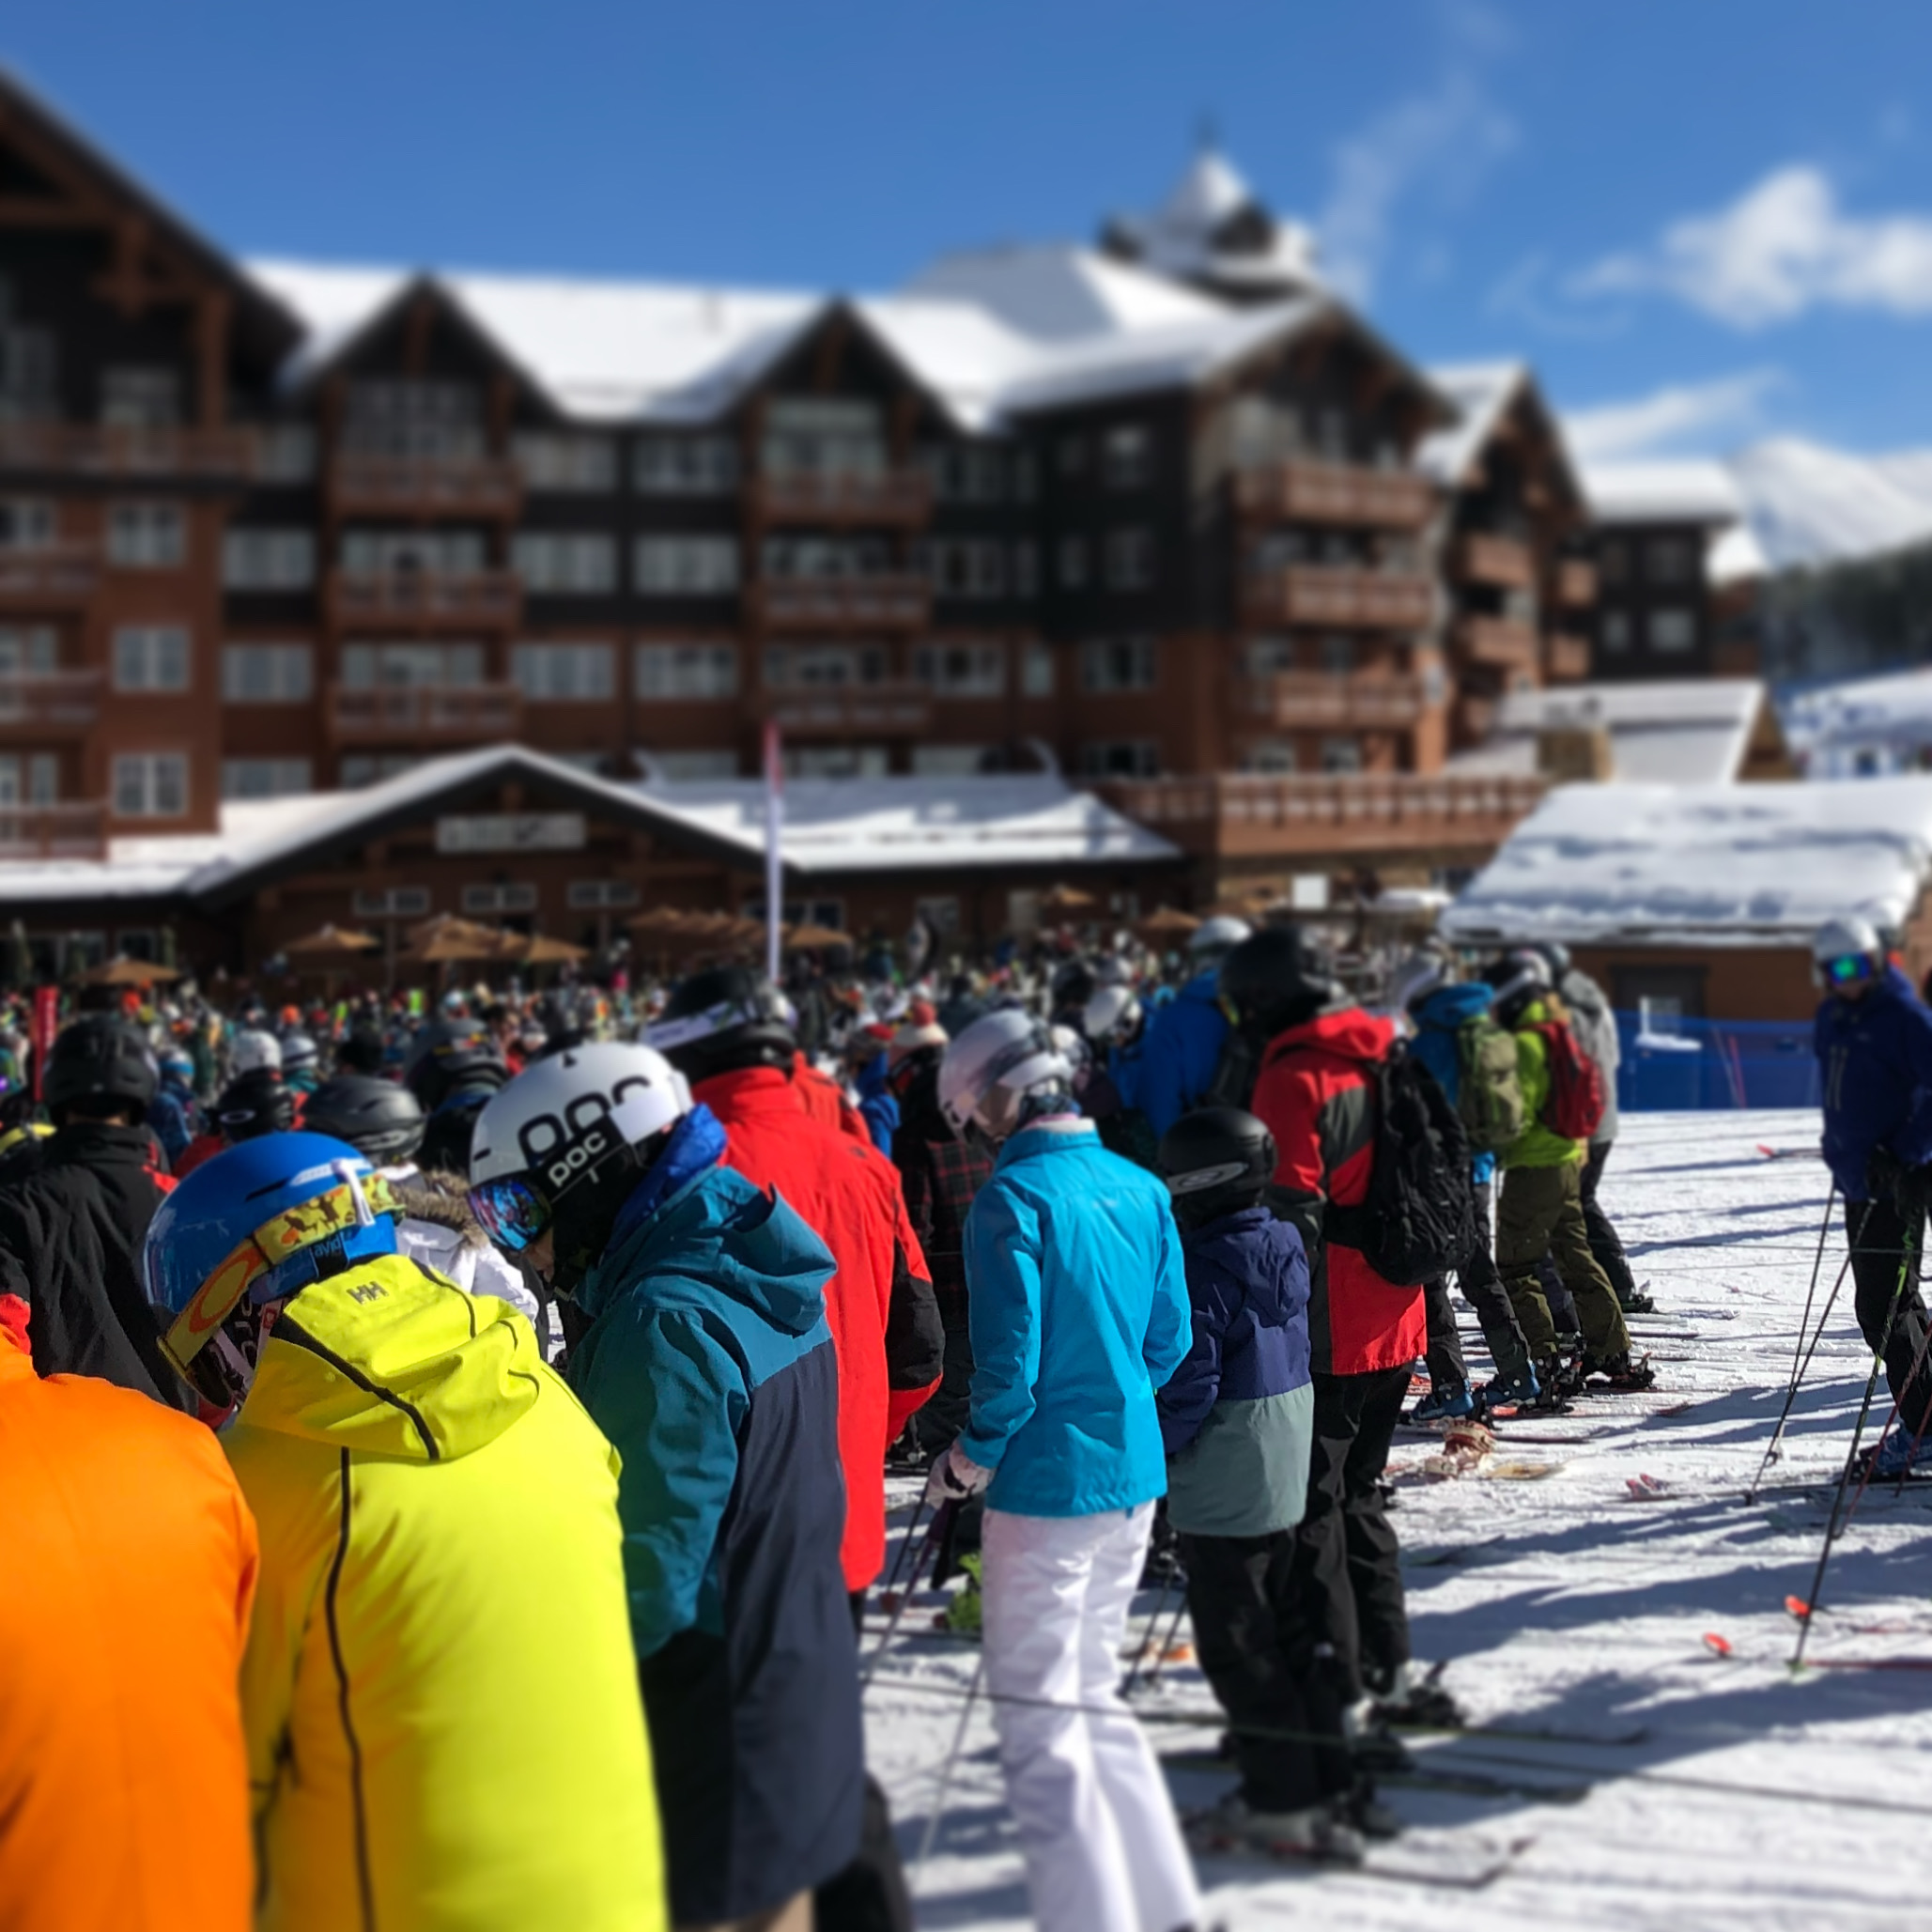 Crowds in line at Breckenridge ski resort